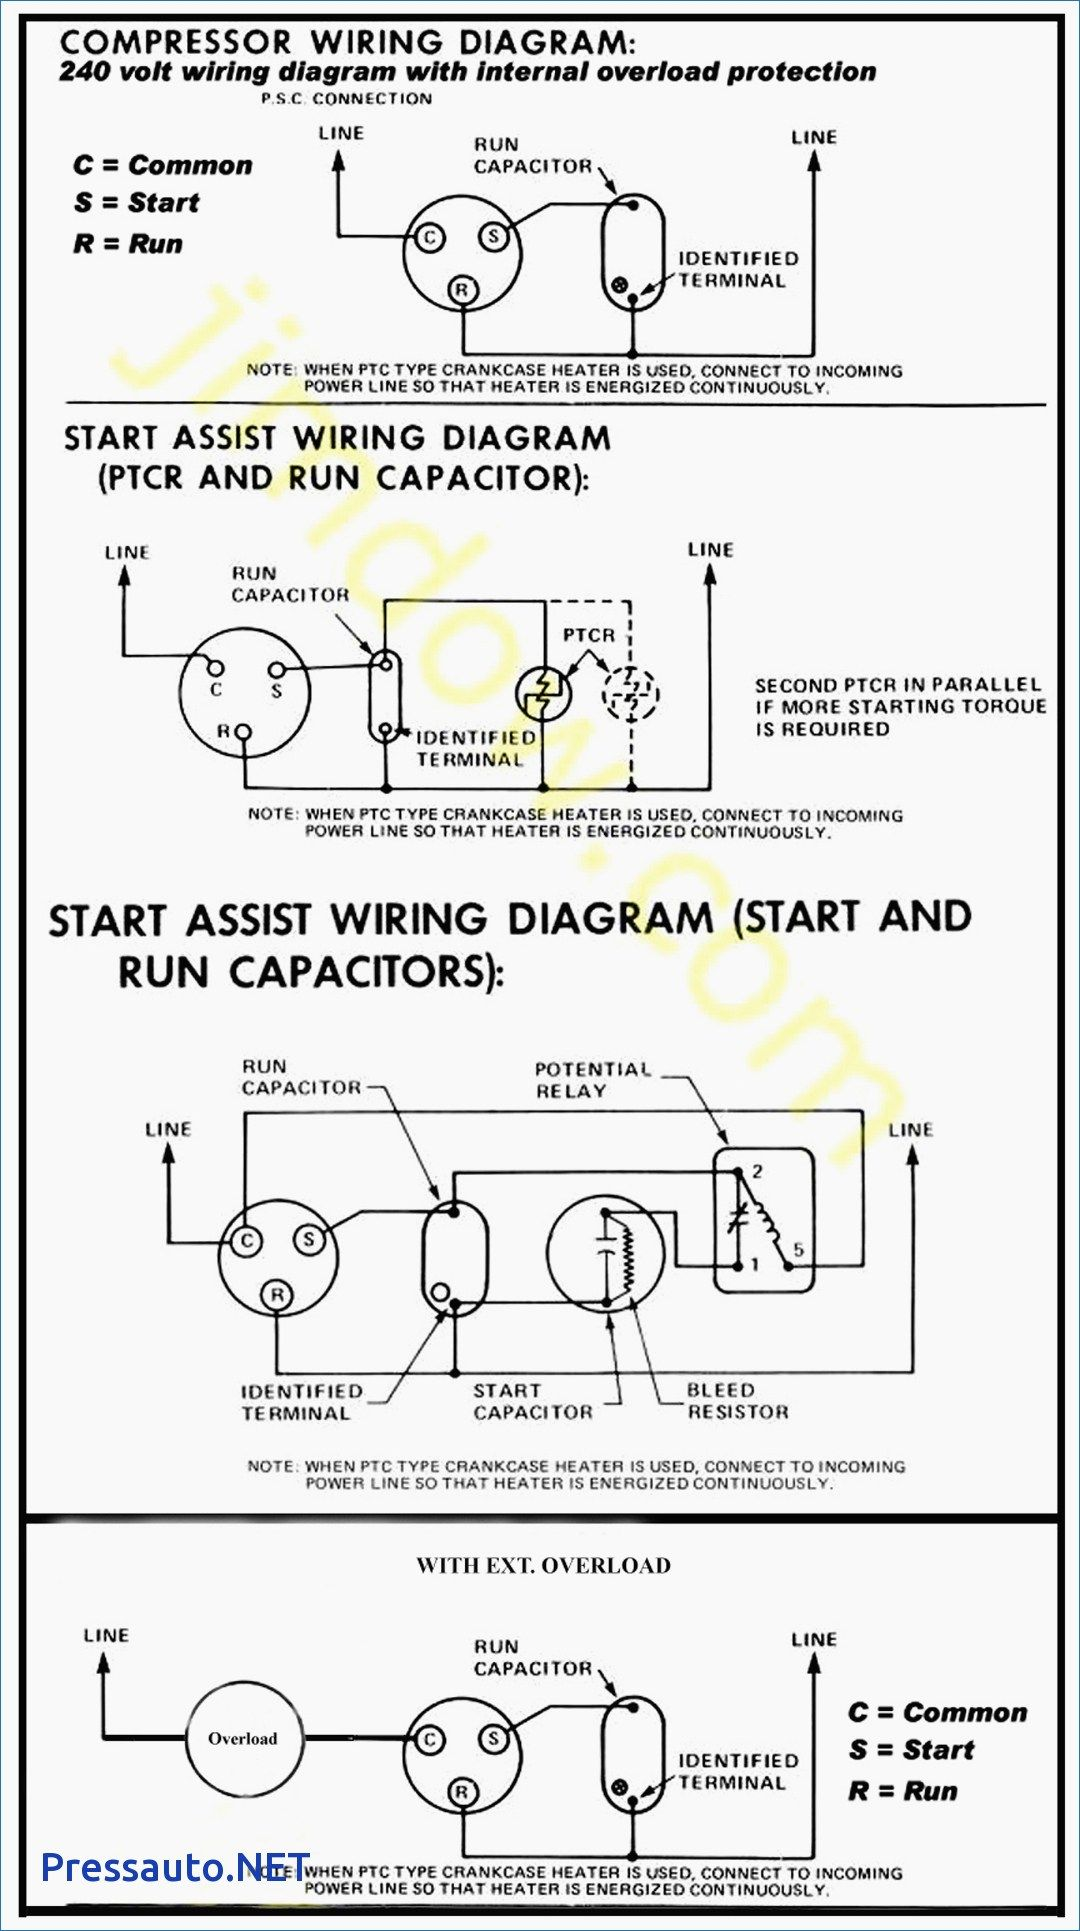 Hard Start Capacitor Wiring Diagram Throughout Starting | Got it Now on hard start capacitor, cool start wiring diagram, smart start wiring diagram, ready start wiring diagram, run start wiring diagram, soft start wiring diagram, hard start coil, hard drive wiring diagram,